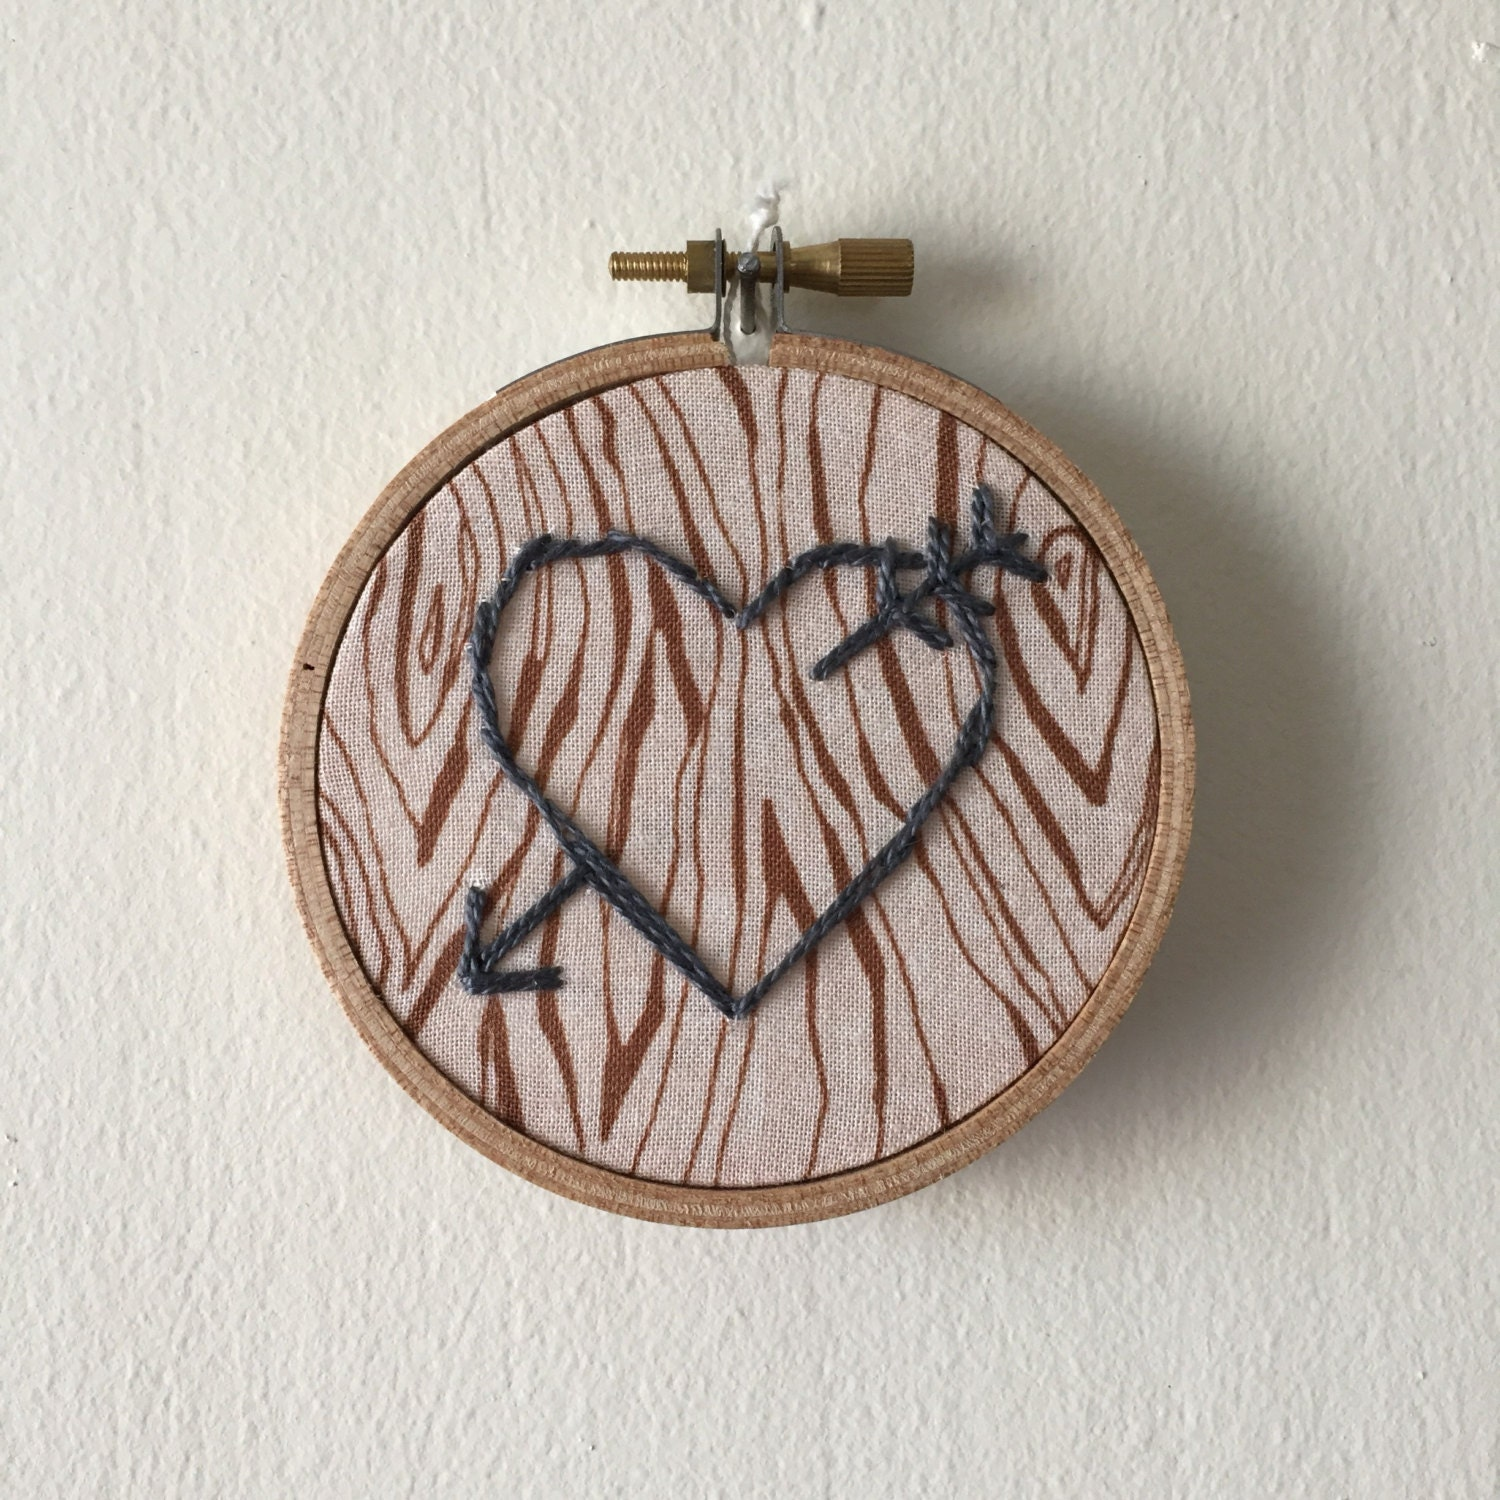 Wood Carved Wall Decor Wood Carving Love Embroidery Wall Hanging Wall Art Wall